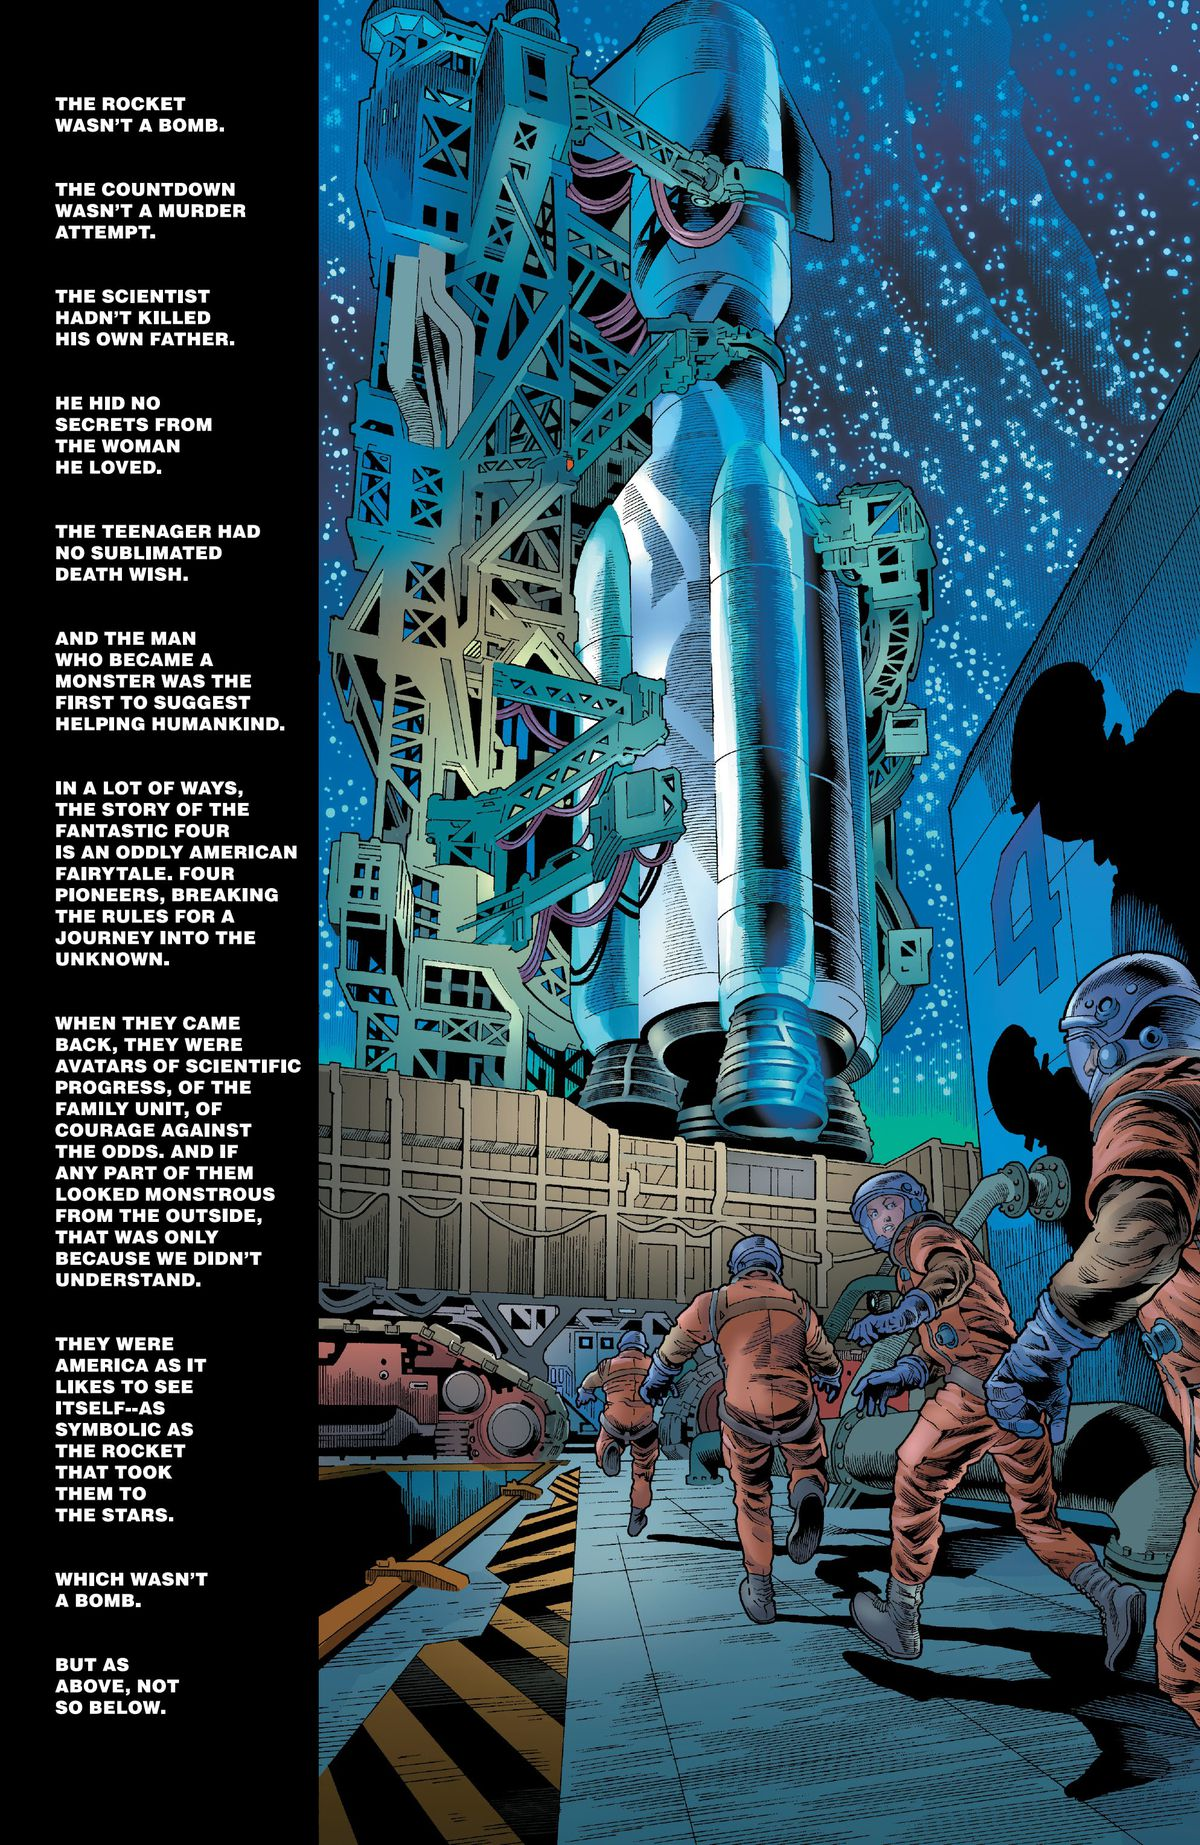 As the Fantastic Four scramble towards the giant rocket that would take them to their origin story, text draws a parallel between their heroic origin and the Hulk's tragic one in Immortal Hulk #49 (2021).